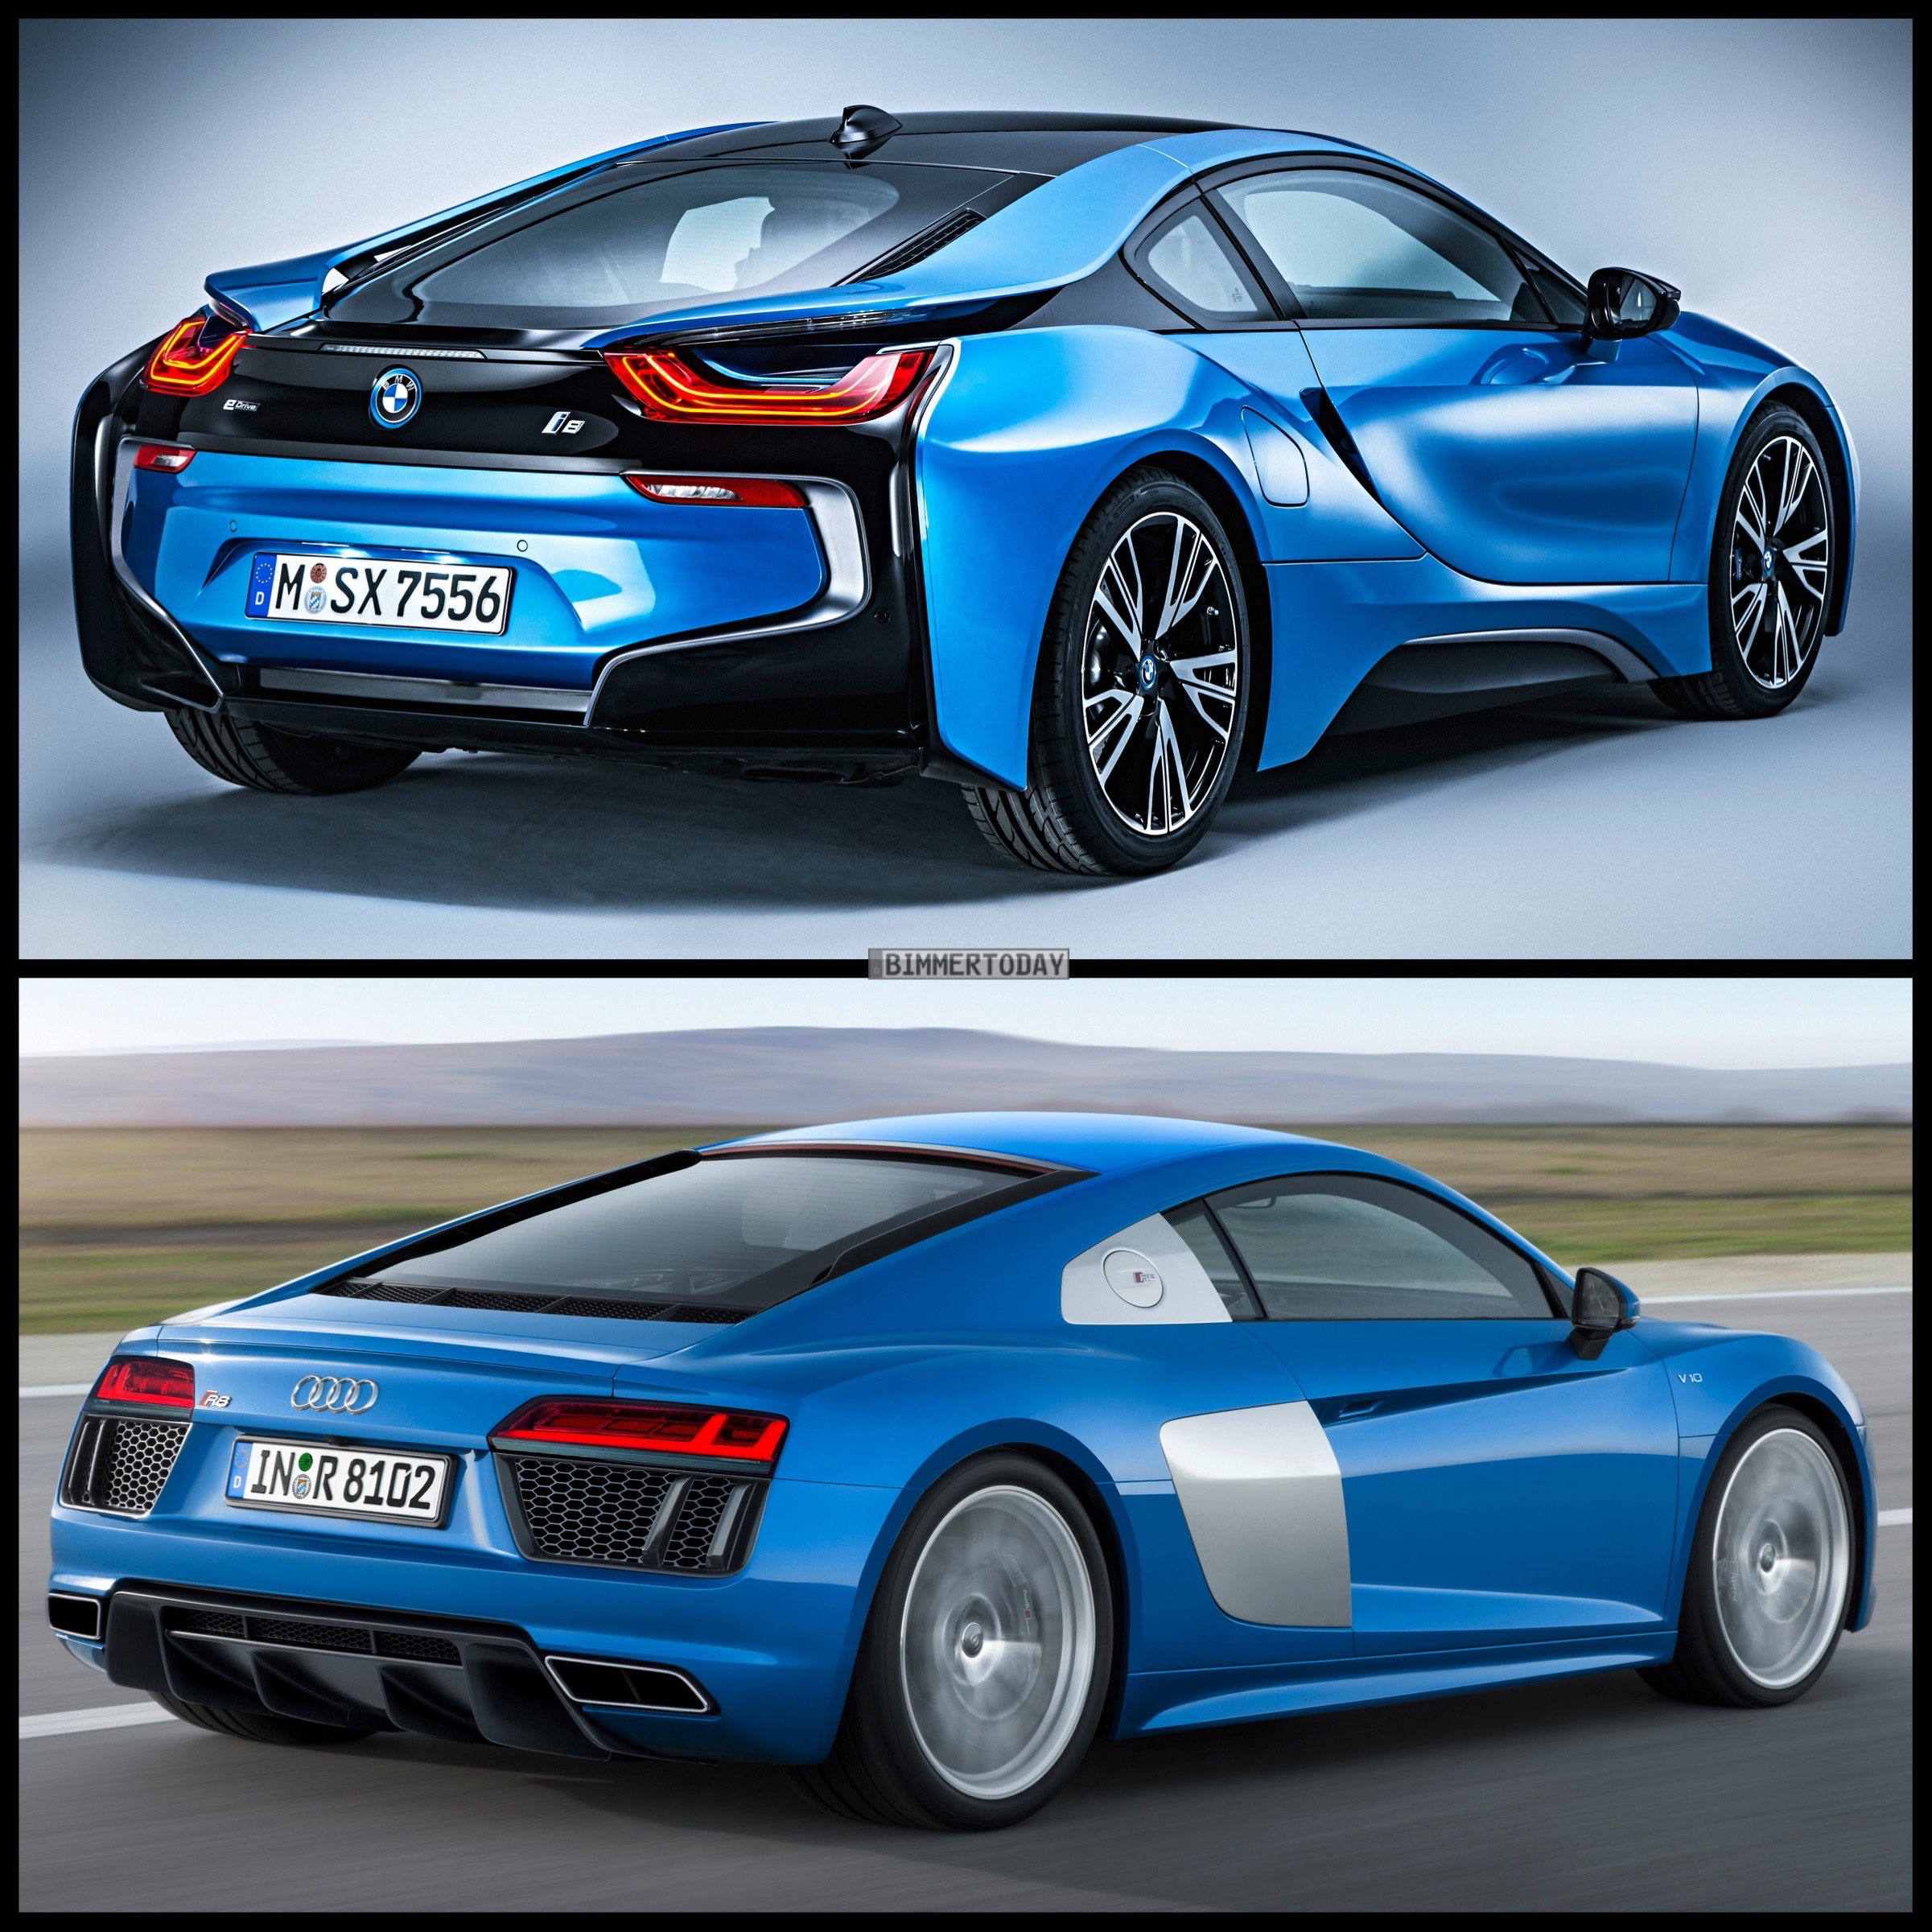 Would You Buy The Bmw I8 Or Audi R8 A8 V1 0 Engine Diagram Vs Image 5 750x750 Sitting Between V10